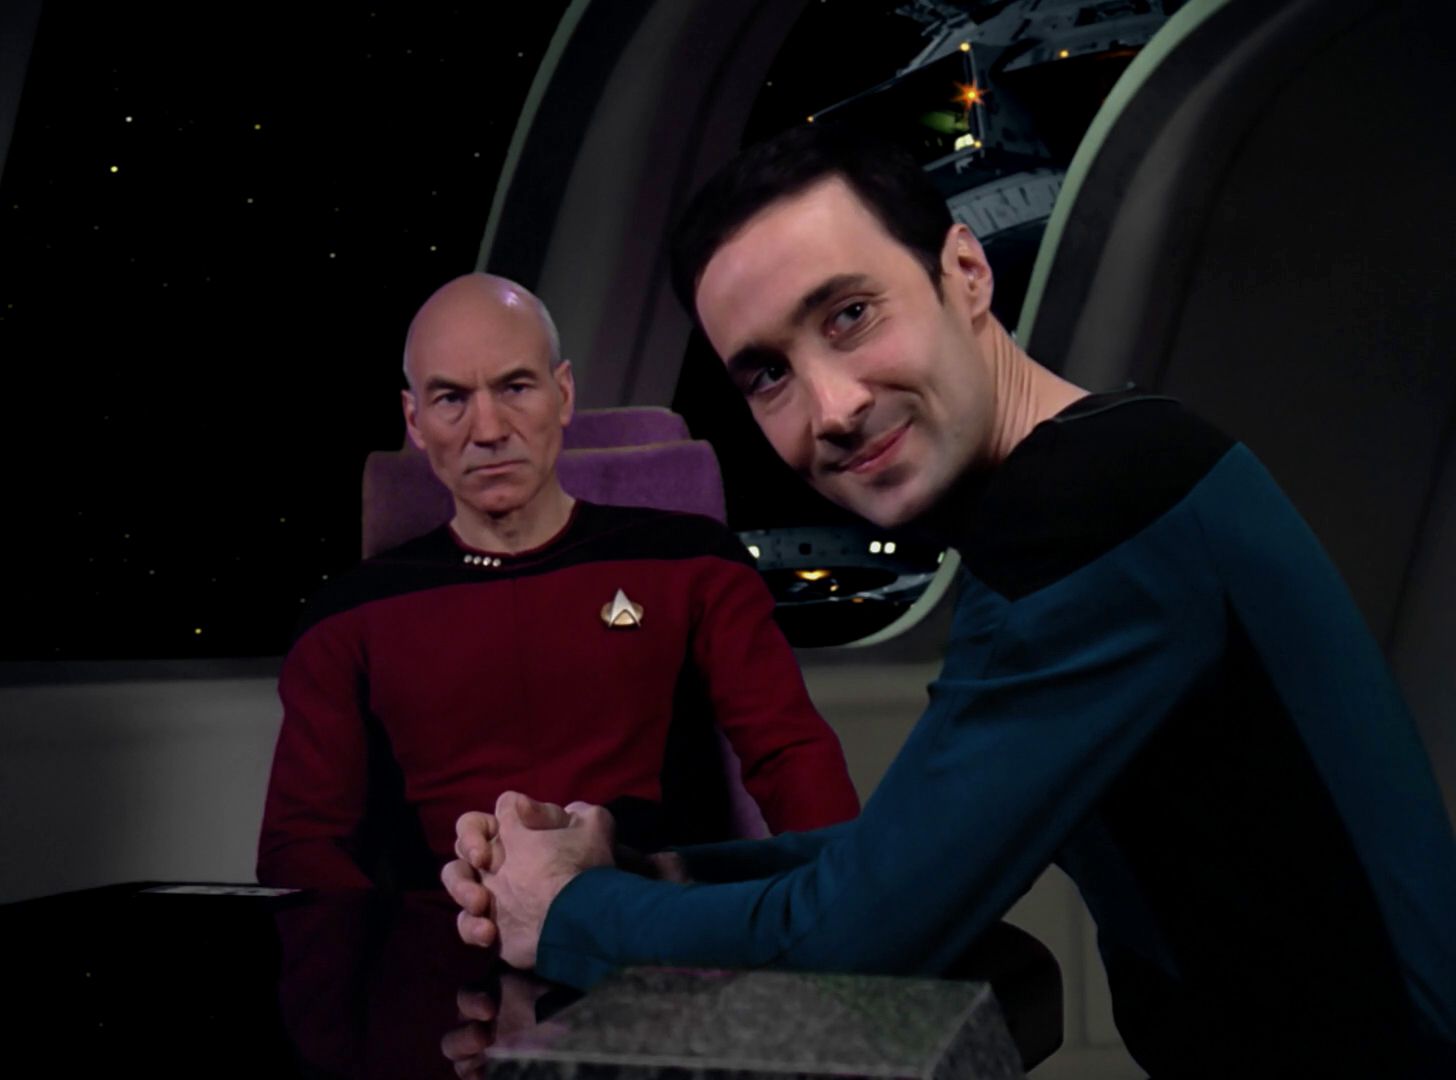 picard and maddox in star trek the next generation It's a collection of neural 1 [1] star trek the next generation picard then calls maddox to the stand and asks for the definition of a sentient being.